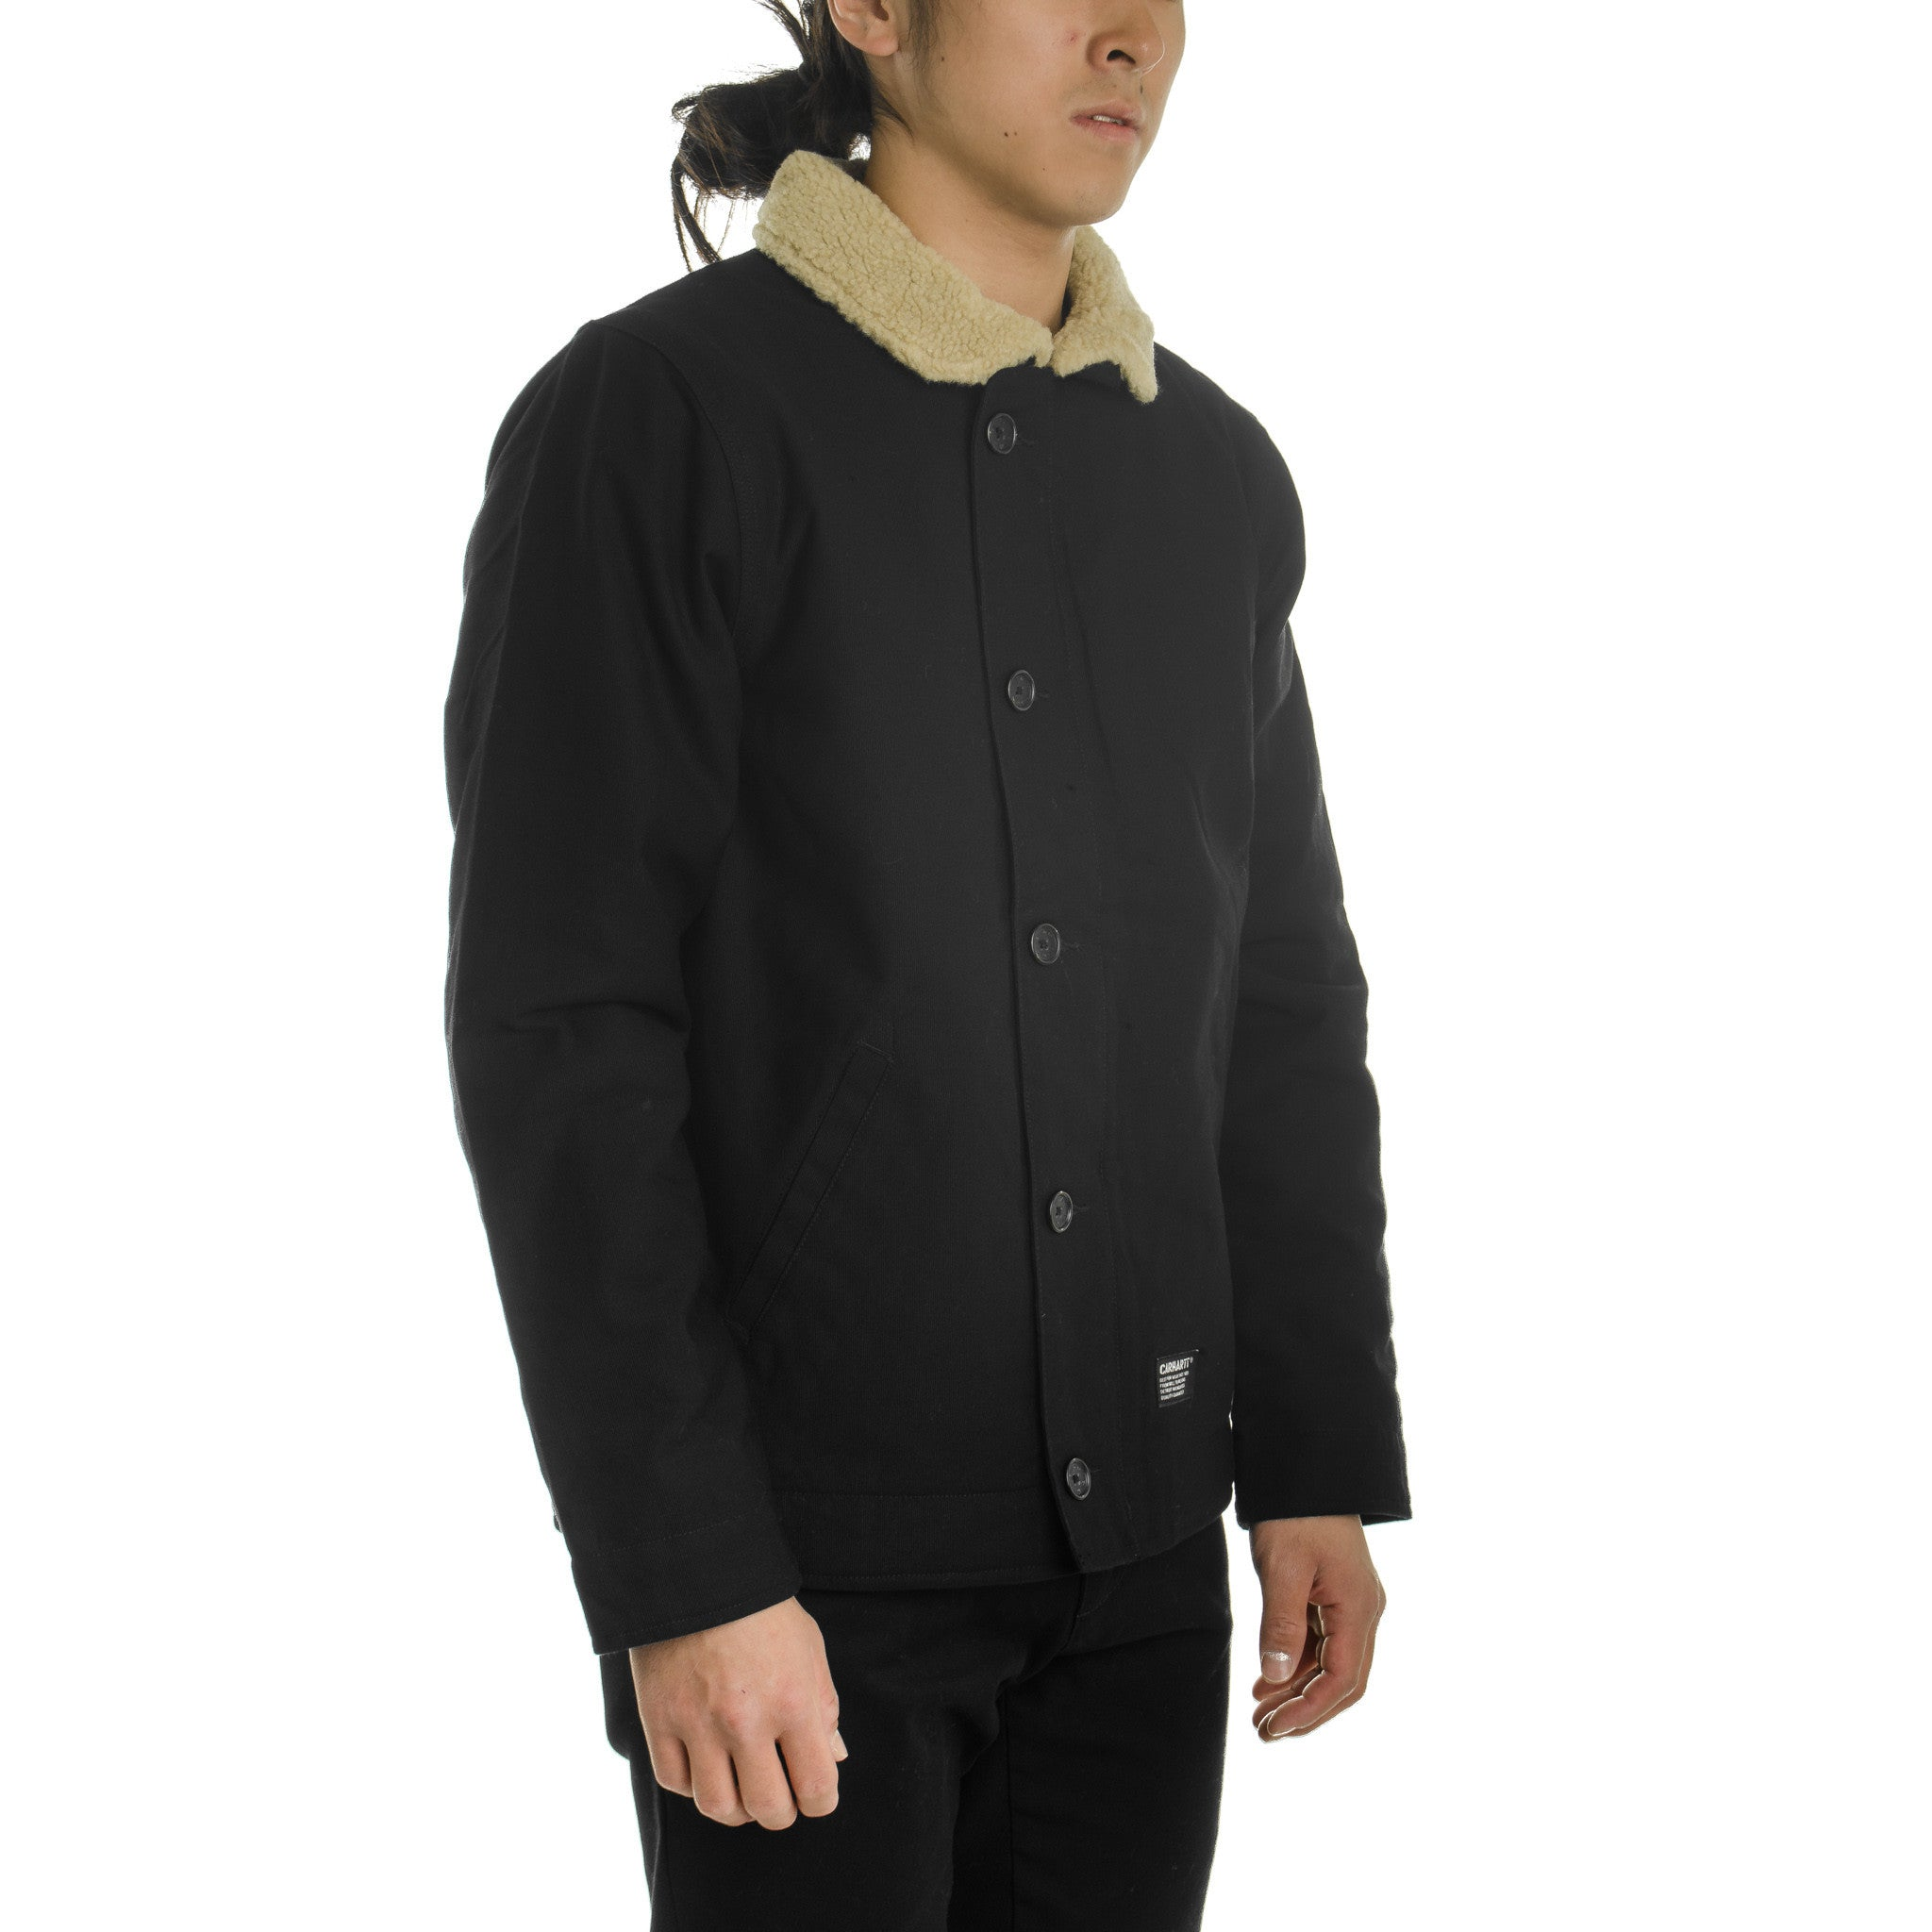 Sheffield Jacket Black